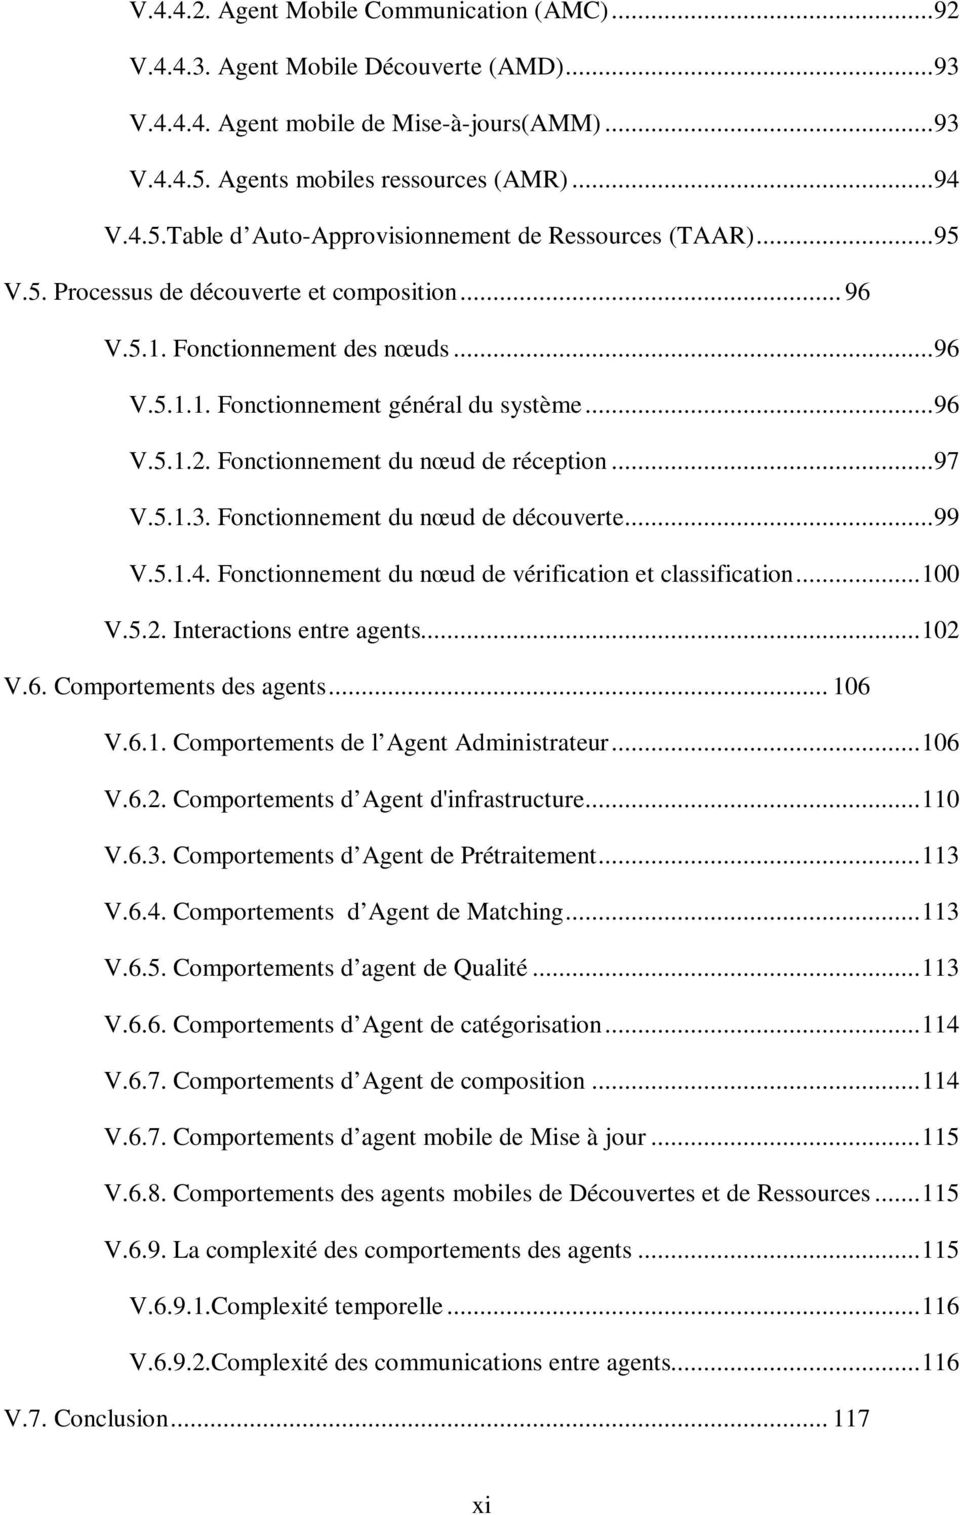 .. 96 V.5.1.2. Fonctionnement du nœud de réception... 97 V.5.1.3. Fonctionnement du nœud de découverte... 99 V.5.1.4. Fonctionnement du nœud de vérification et classification... 100 V.5.2. Interactions entre agents.